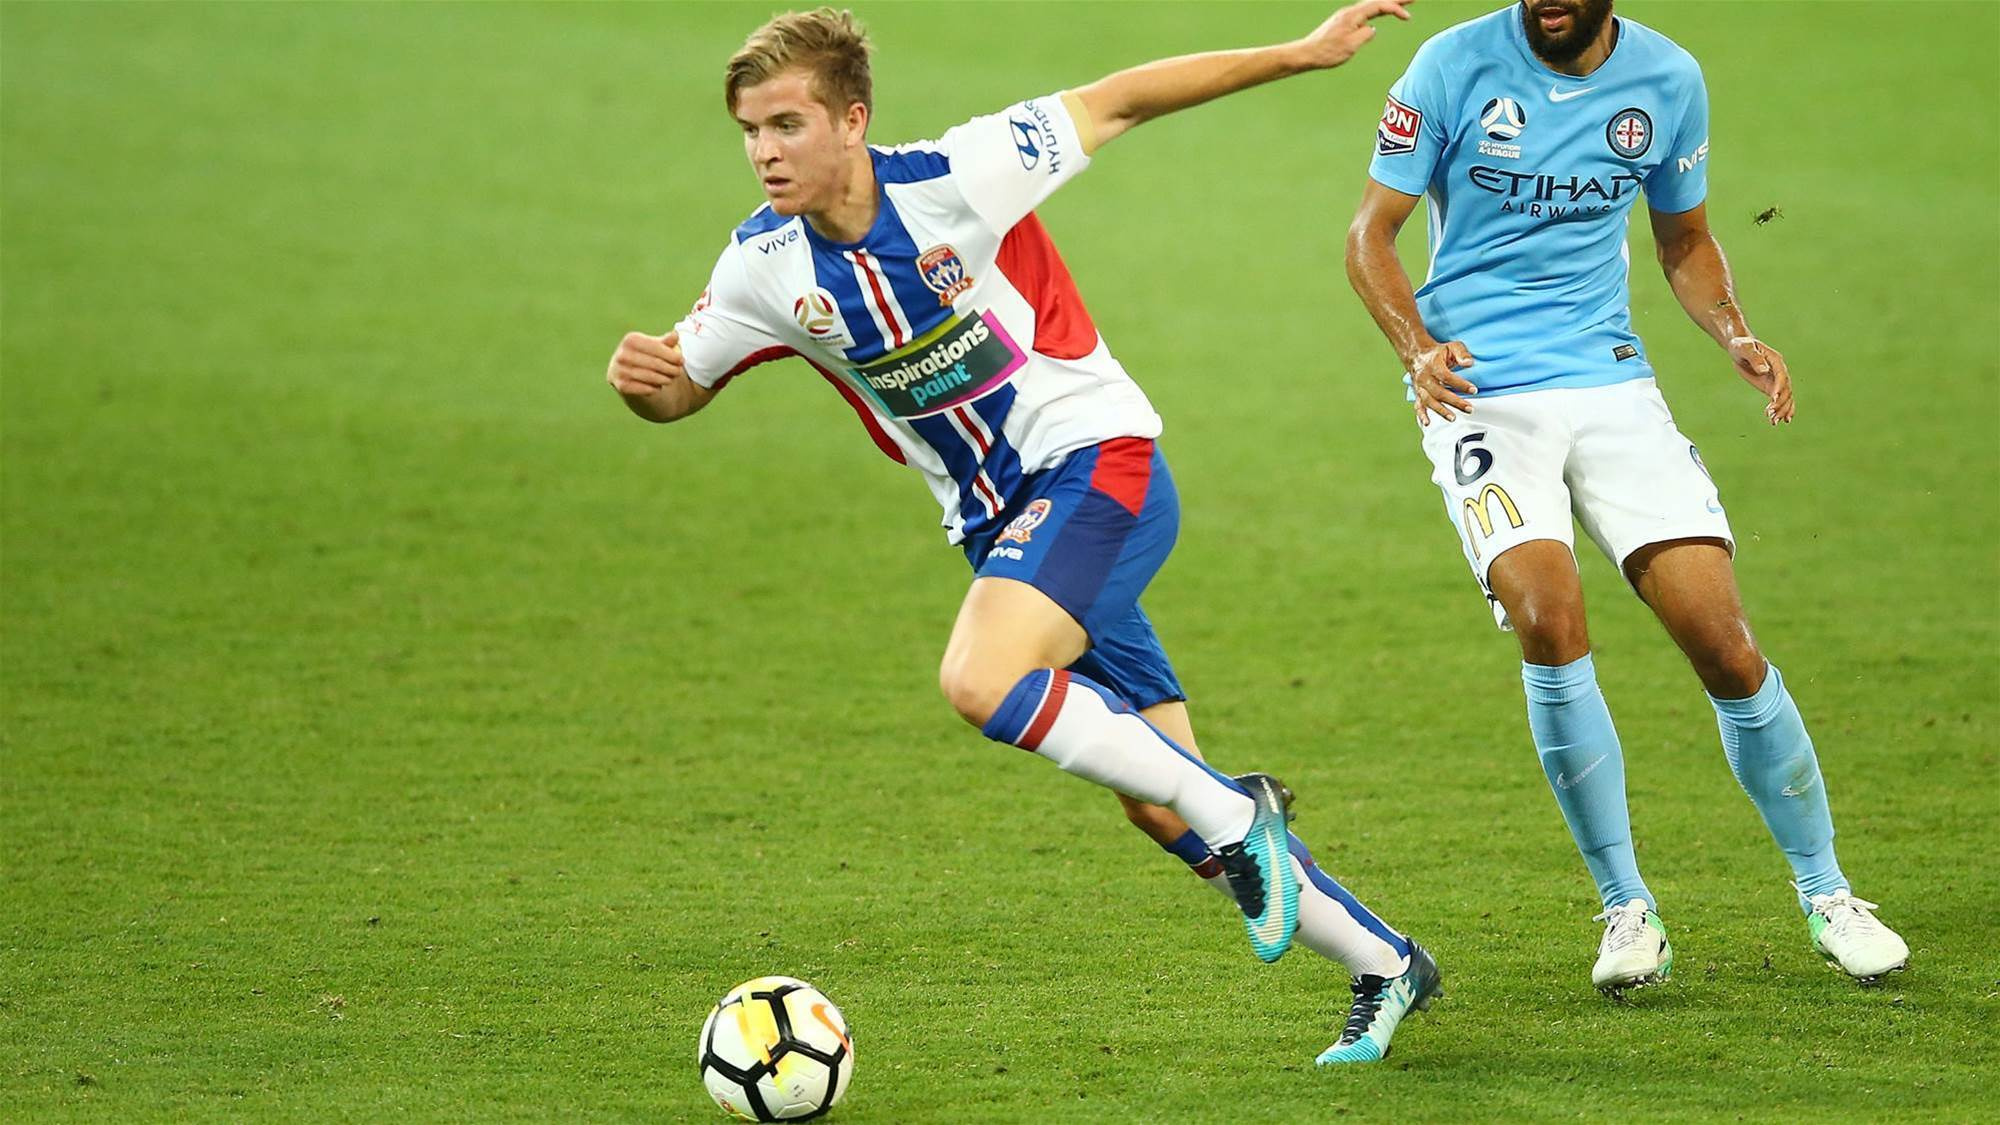 McGree: I came back to prove something